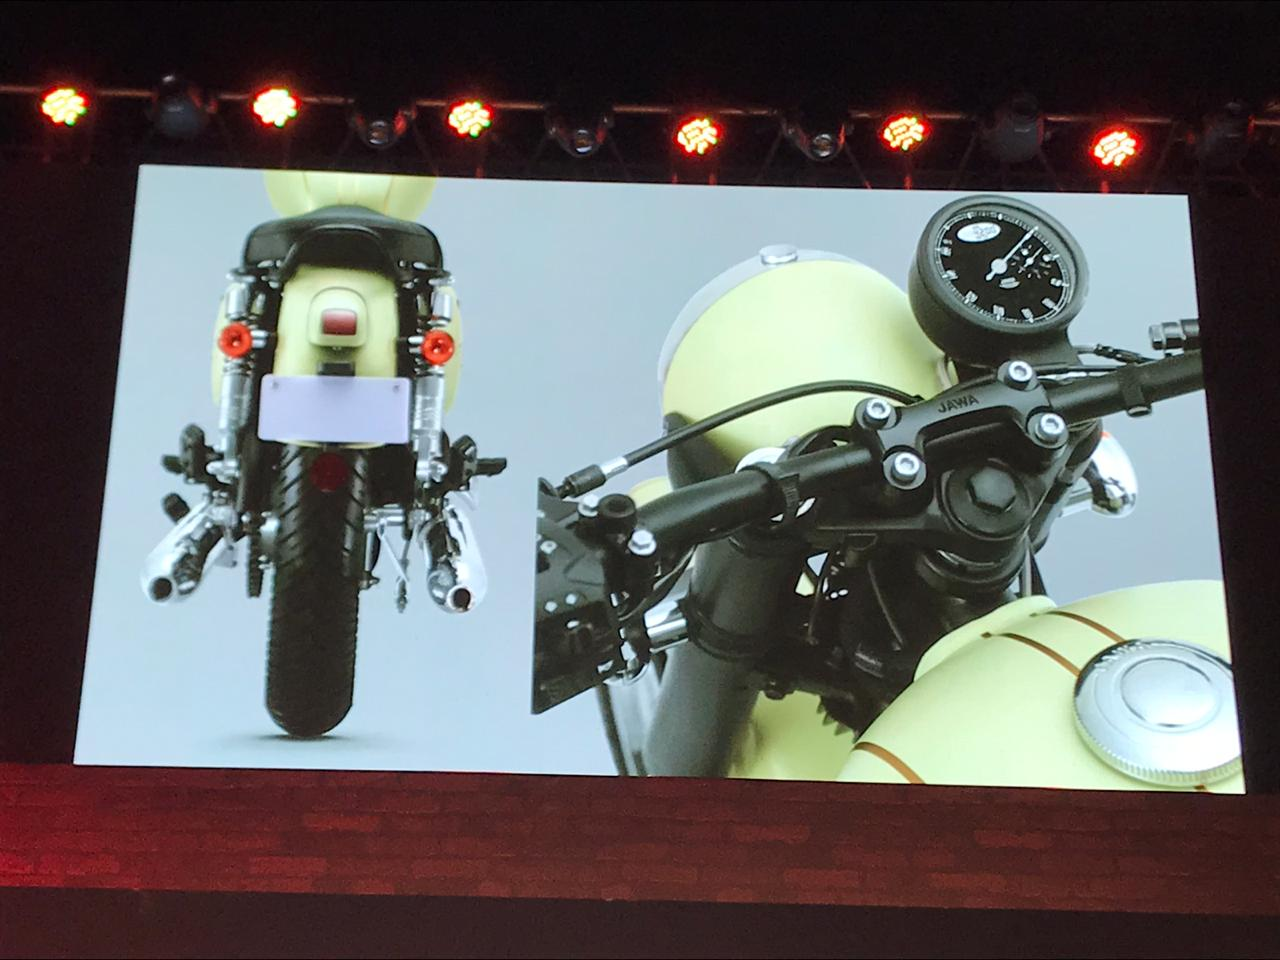 Live updates: Jawa Motorcycles all-new range launched in